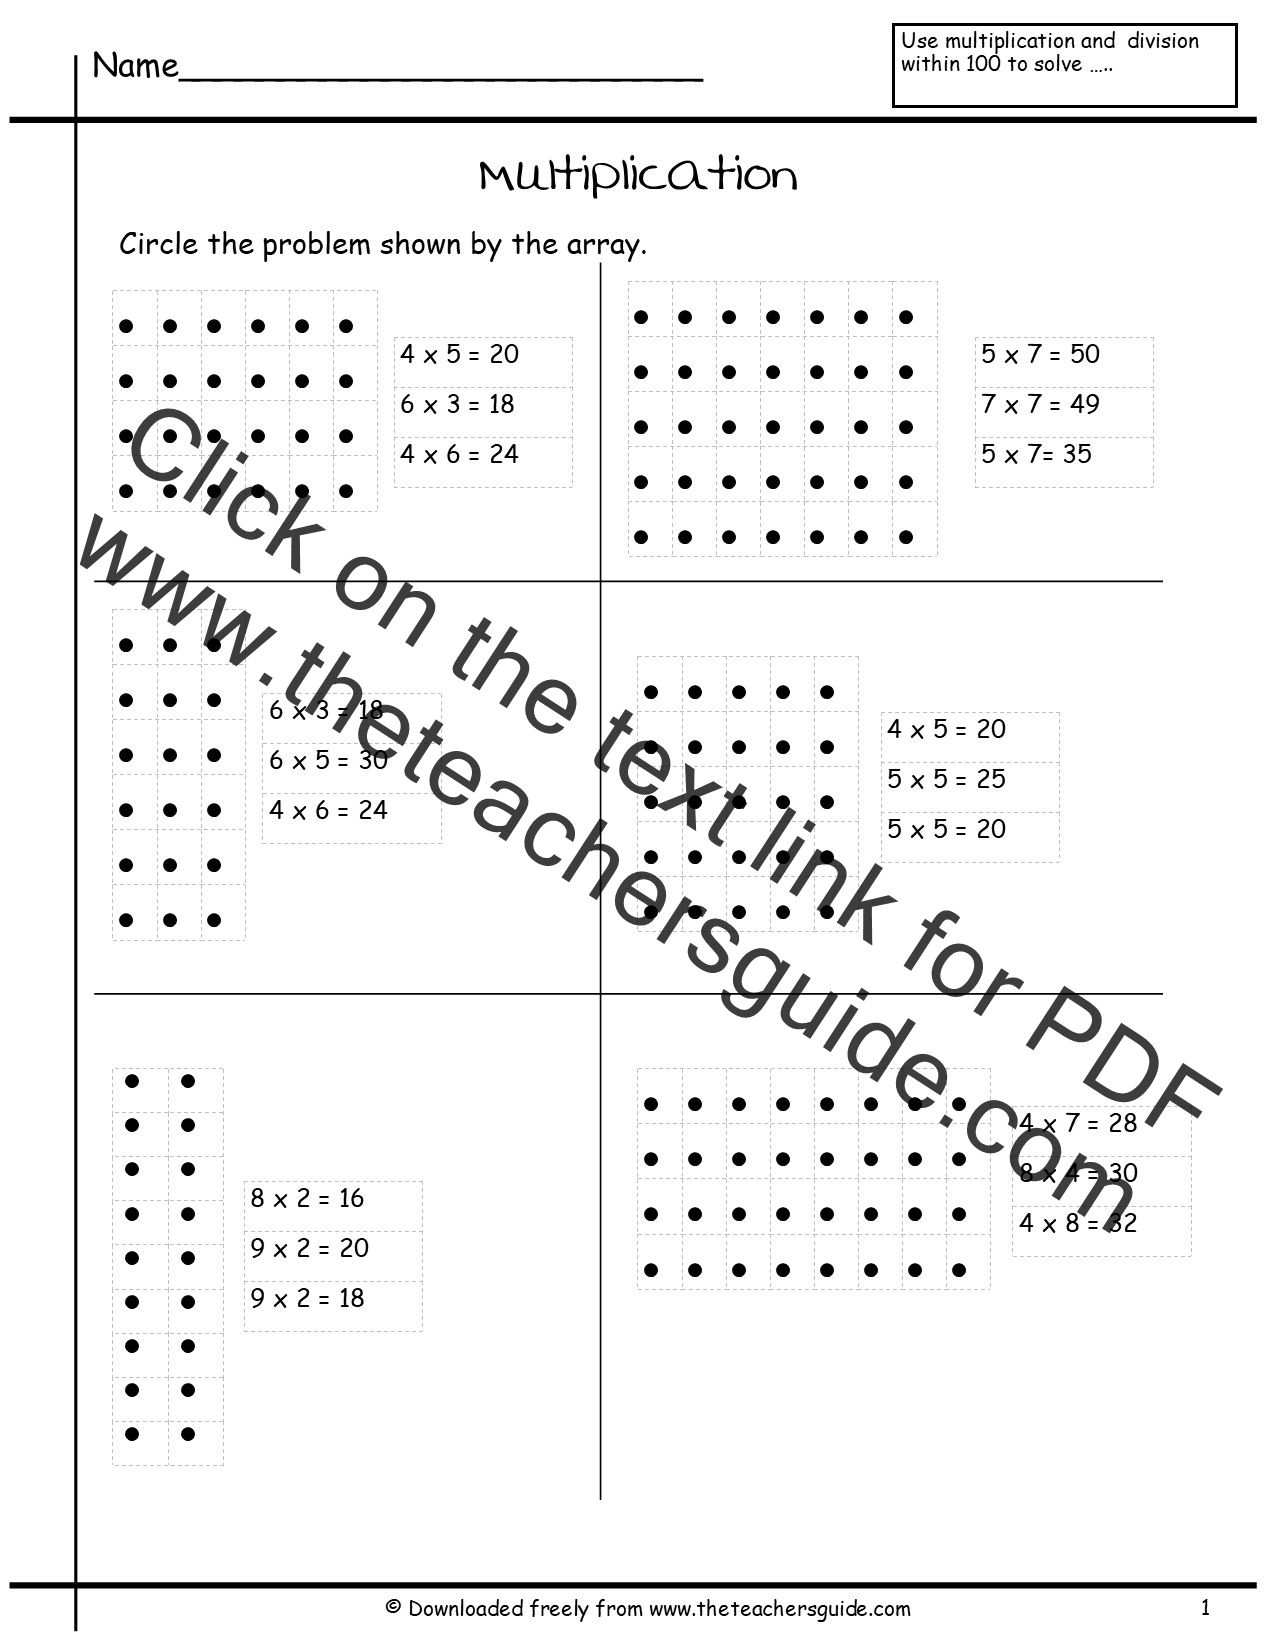 Multiplication Array Worksheets from The Teachers Guide – Multiplication Array Worksheets 3rd Grade